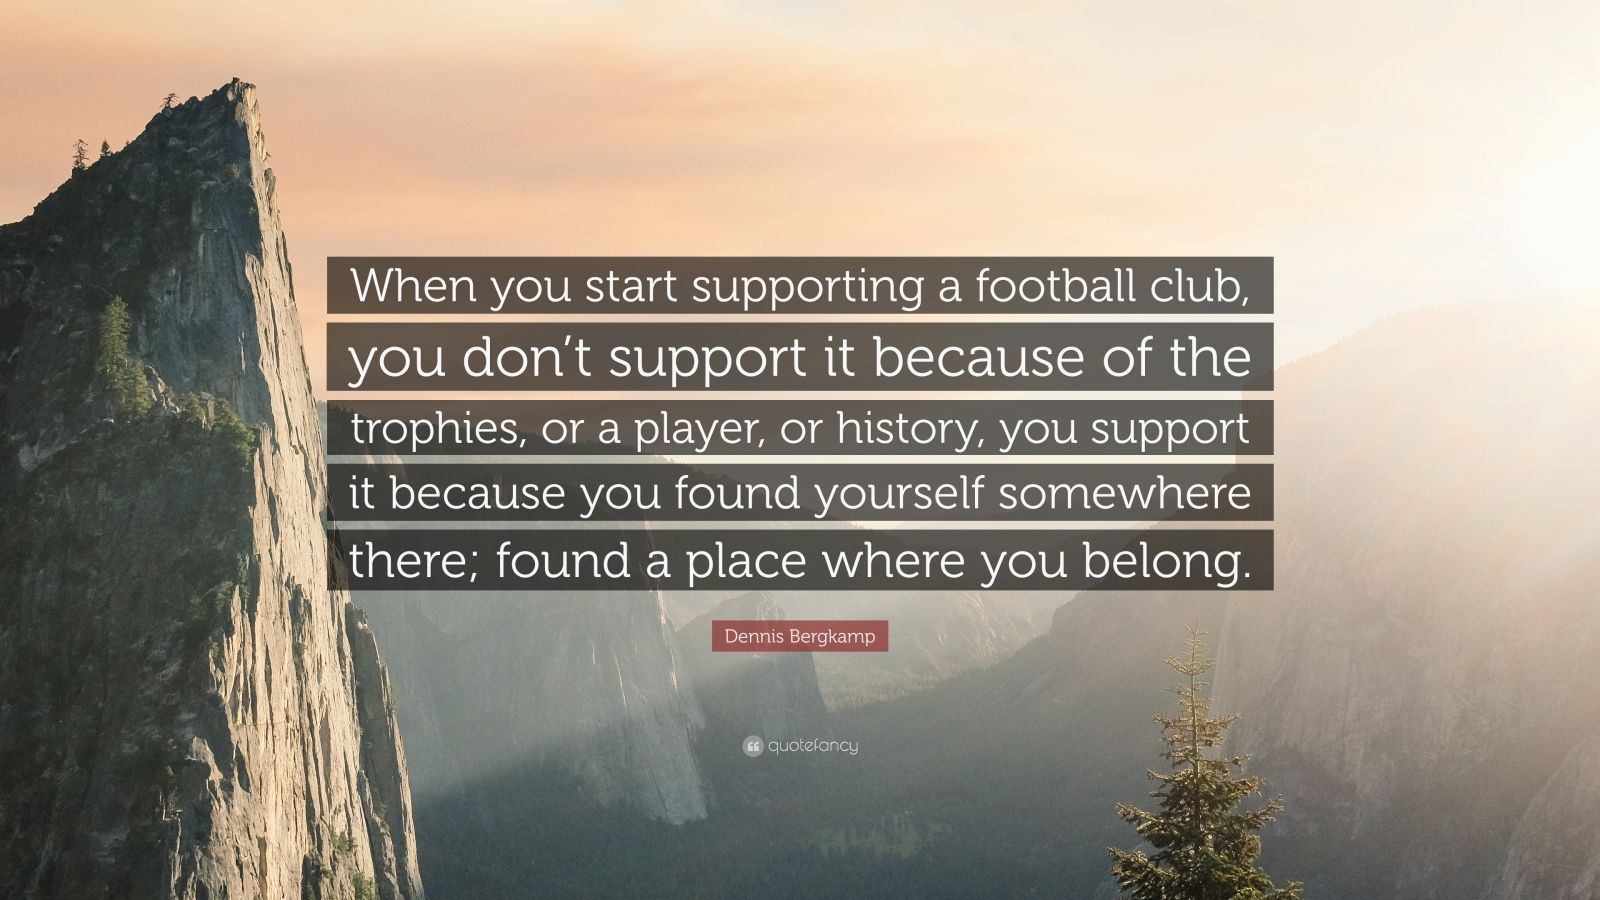 """Dennis Bergkamp Quote: """"When you start supporting a football club, you don't support it because of the trophies, or a player, or history, you support it because you found yourself somewhere there; found a place where you belong."""""""